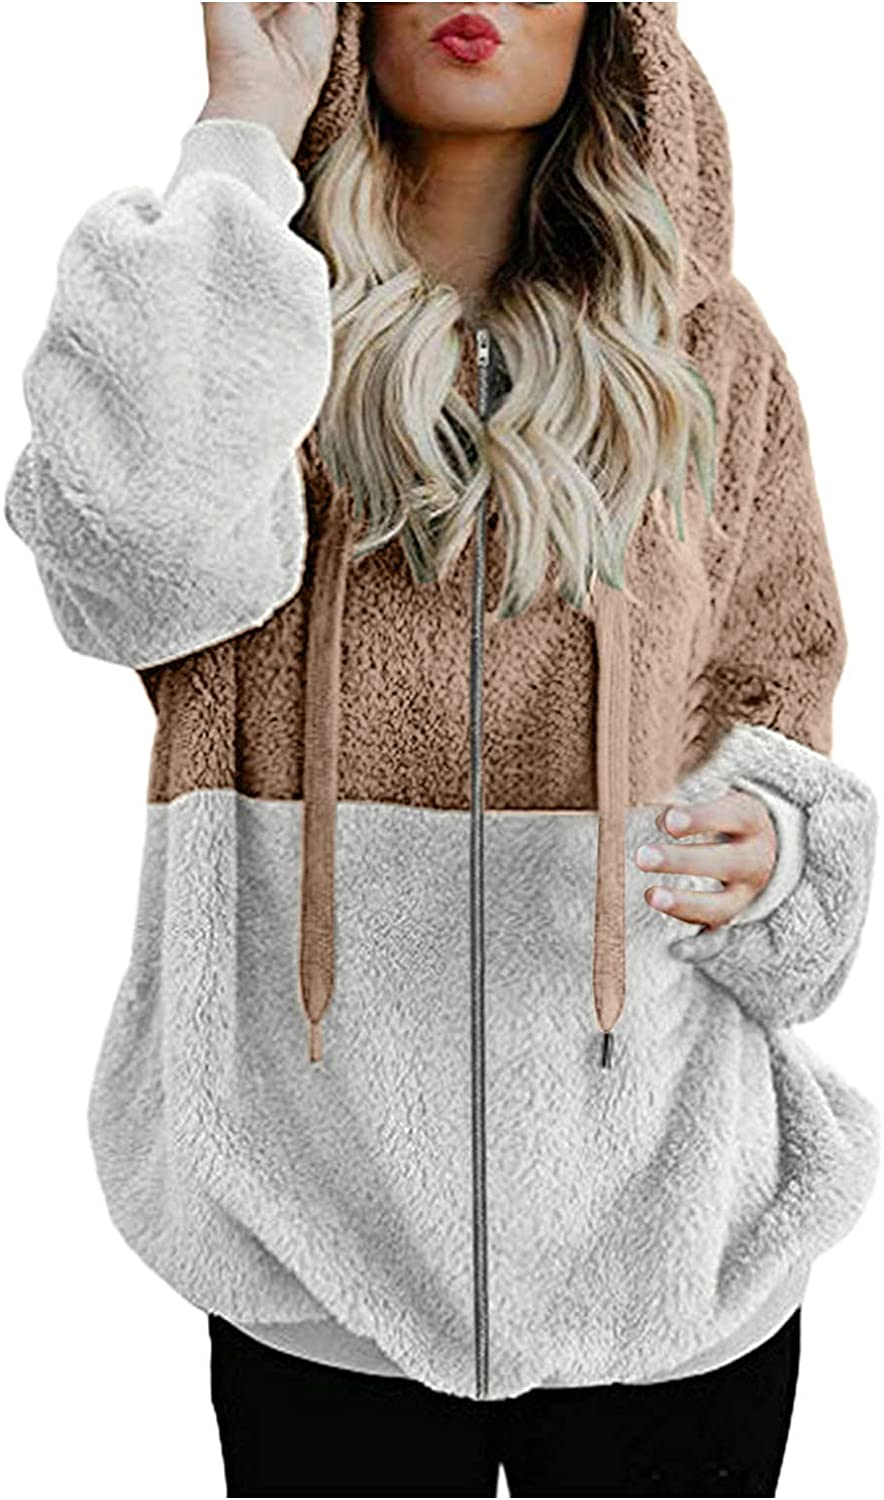 Bombasty Pullovers for Womens Button Down Hoodies Drawstring Color Block Hooded Pocket Casual Long Sleeve V Neck Sweatshirt